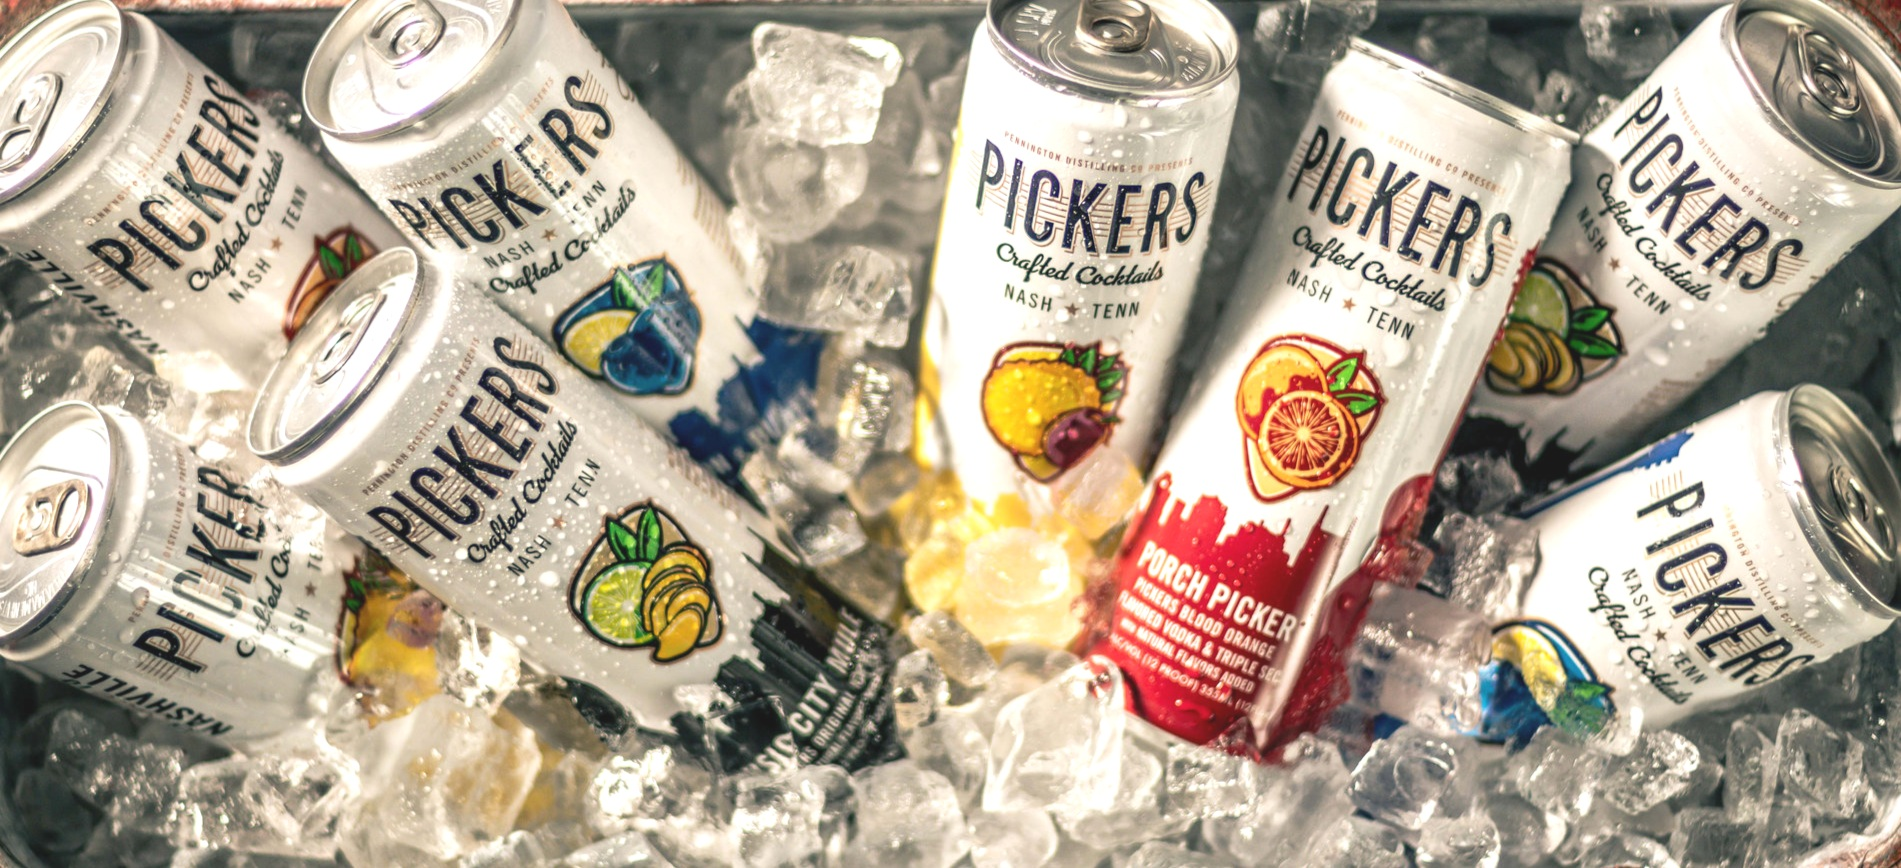 Canned Cocktails — Pickers Vodka